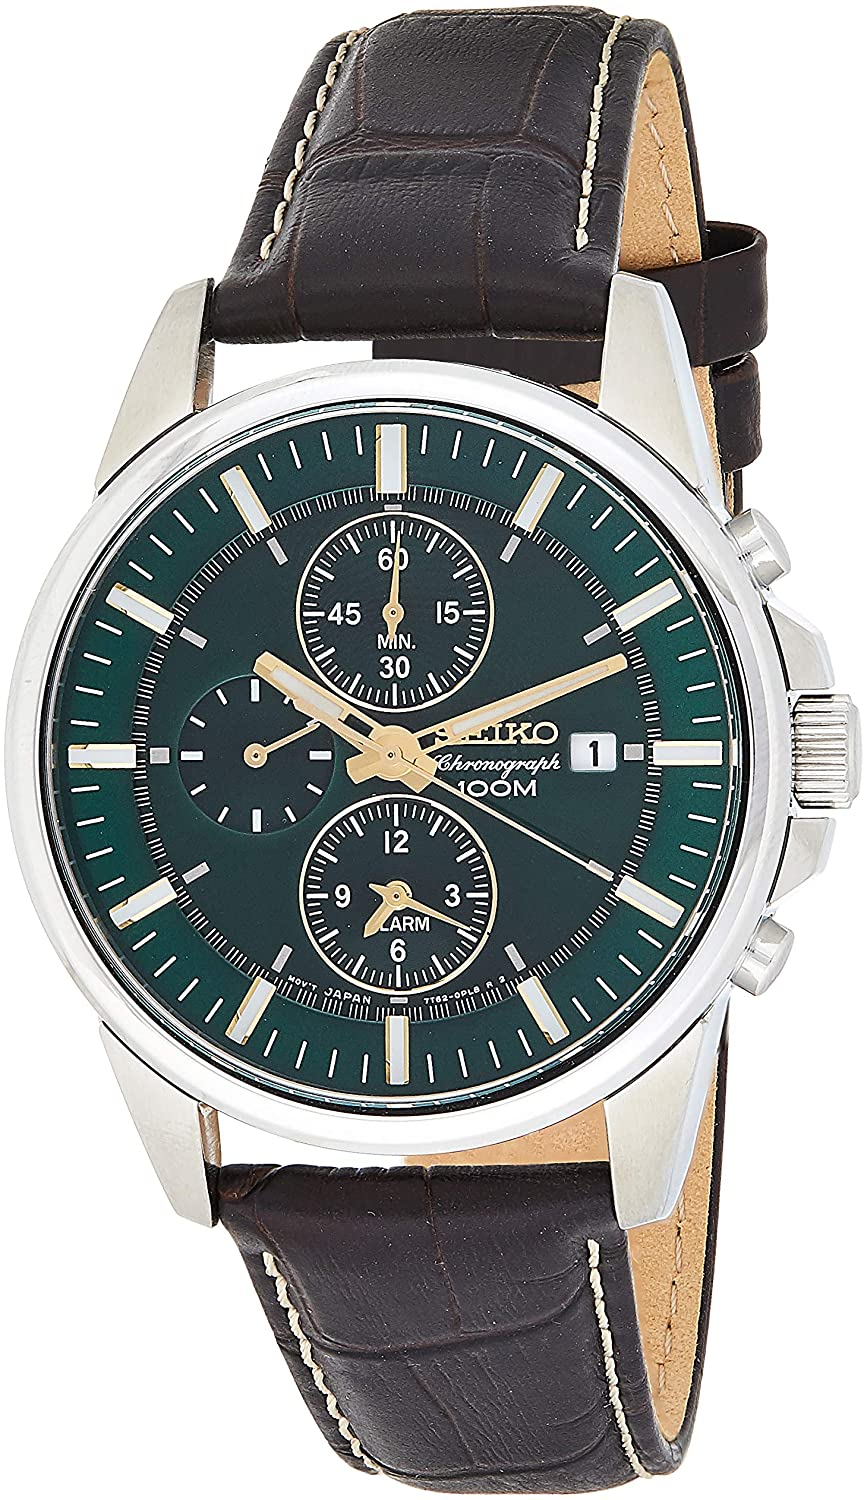 SNAF09 Men's Leather Green Dial